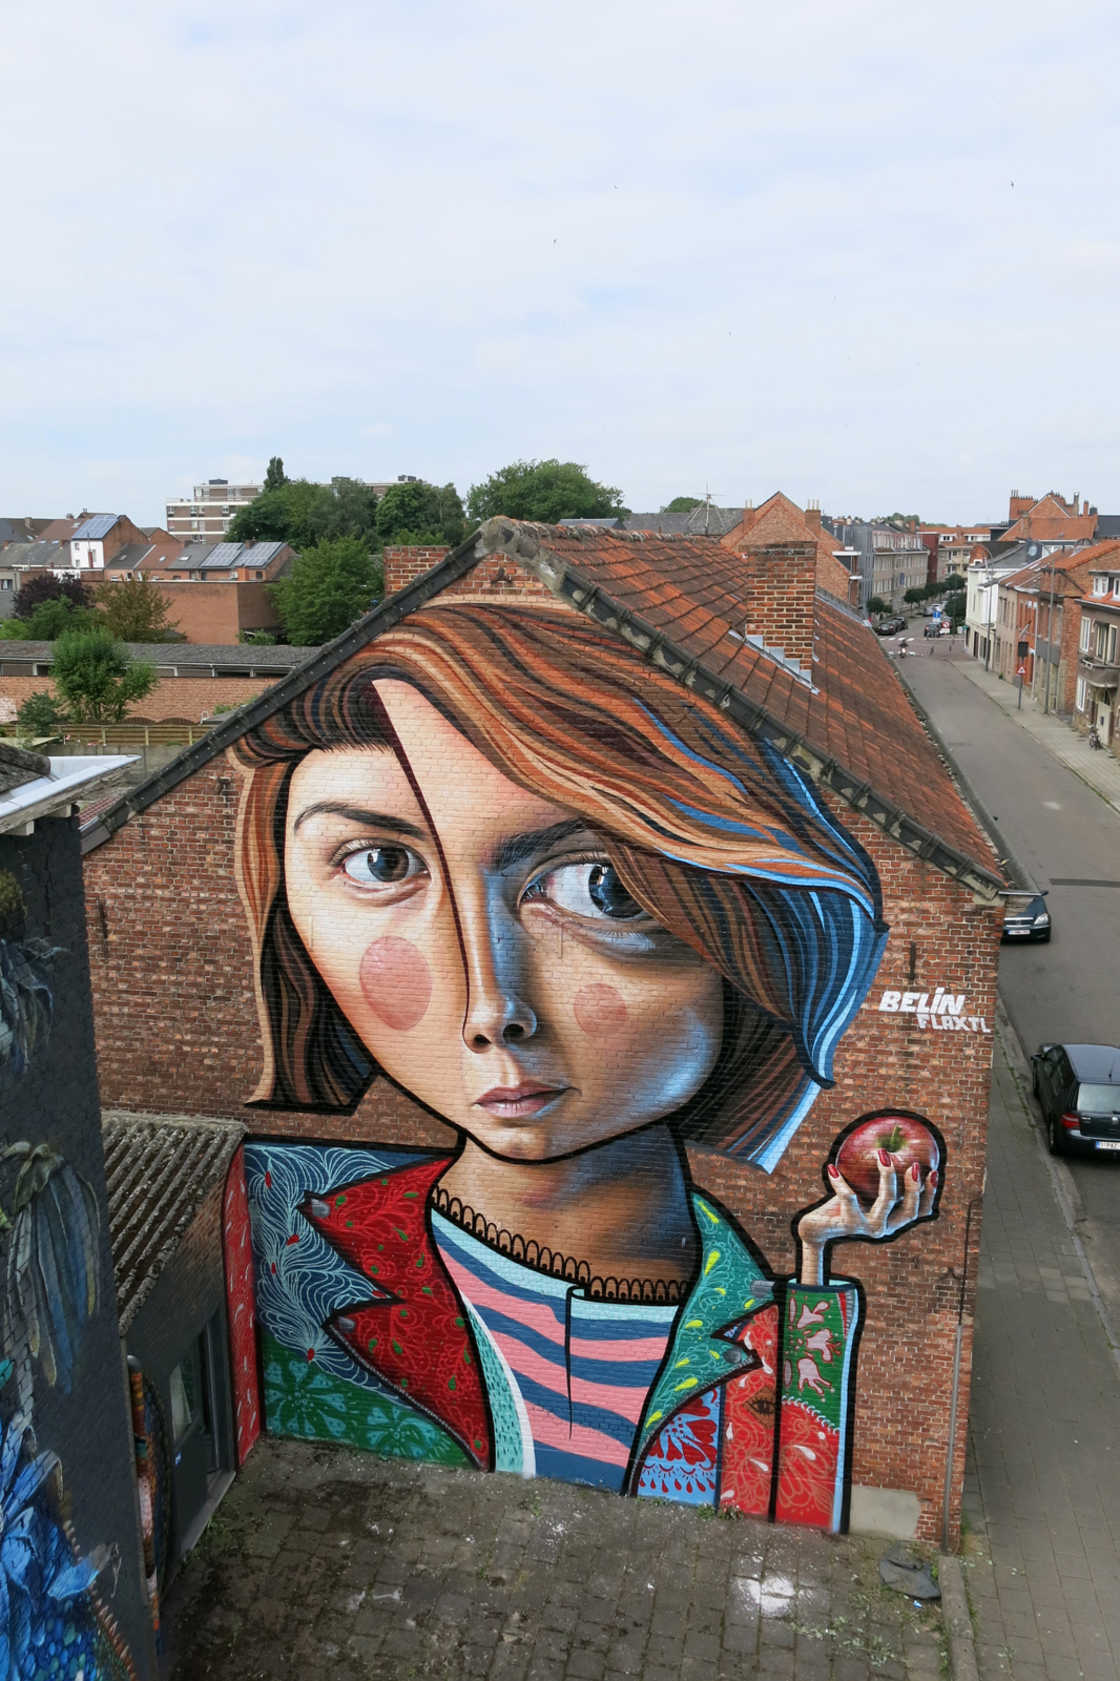 Between Cubism and Realism, the amazing street art creations by Belin